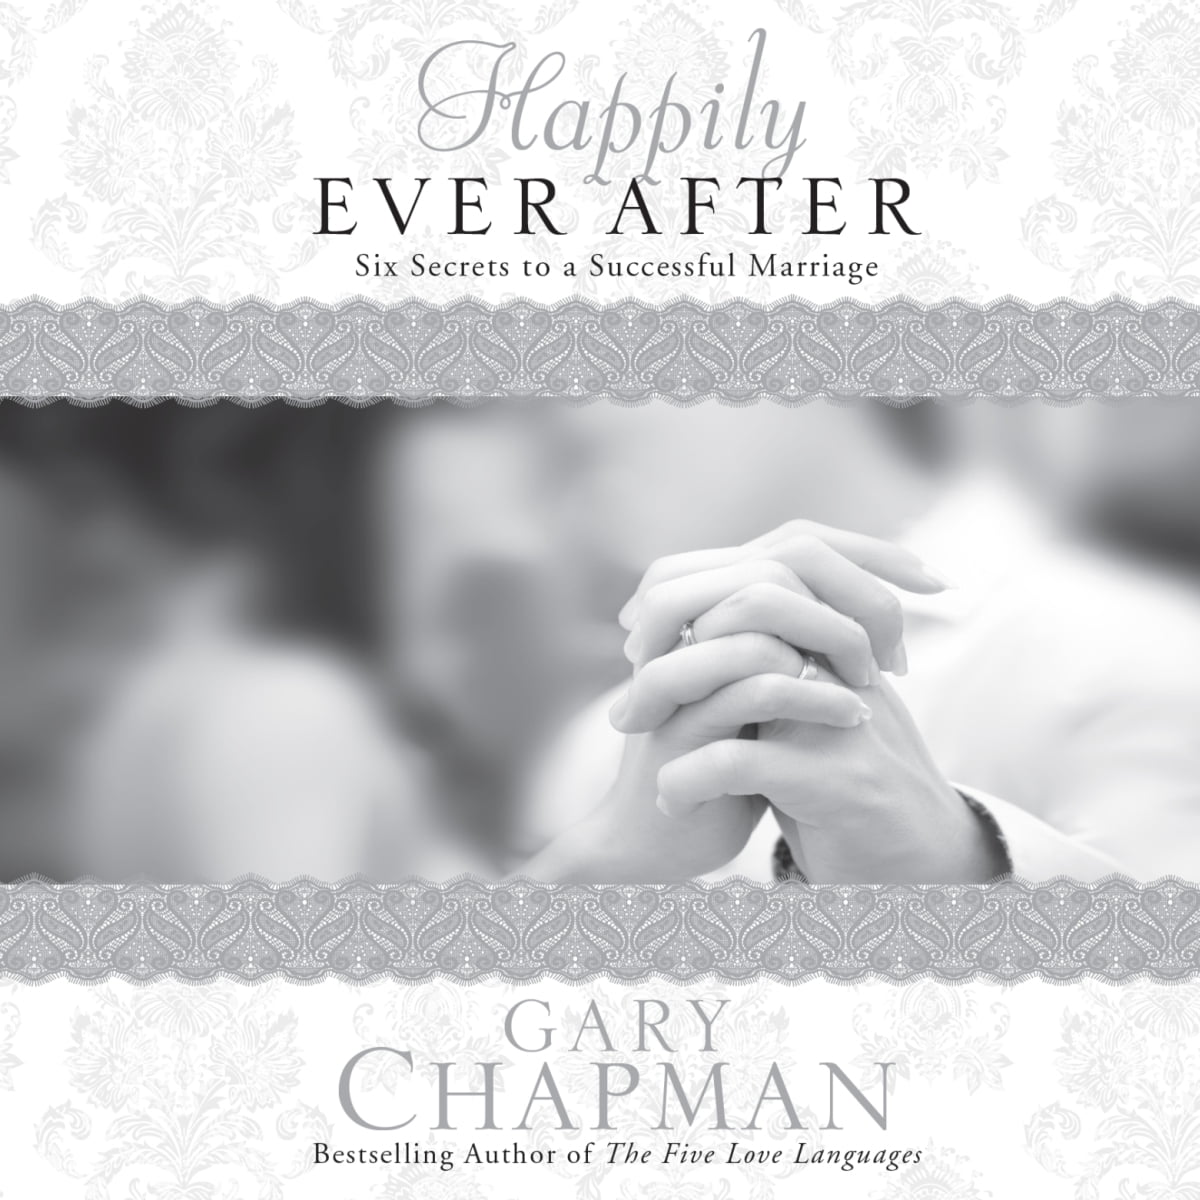 happily married ever after